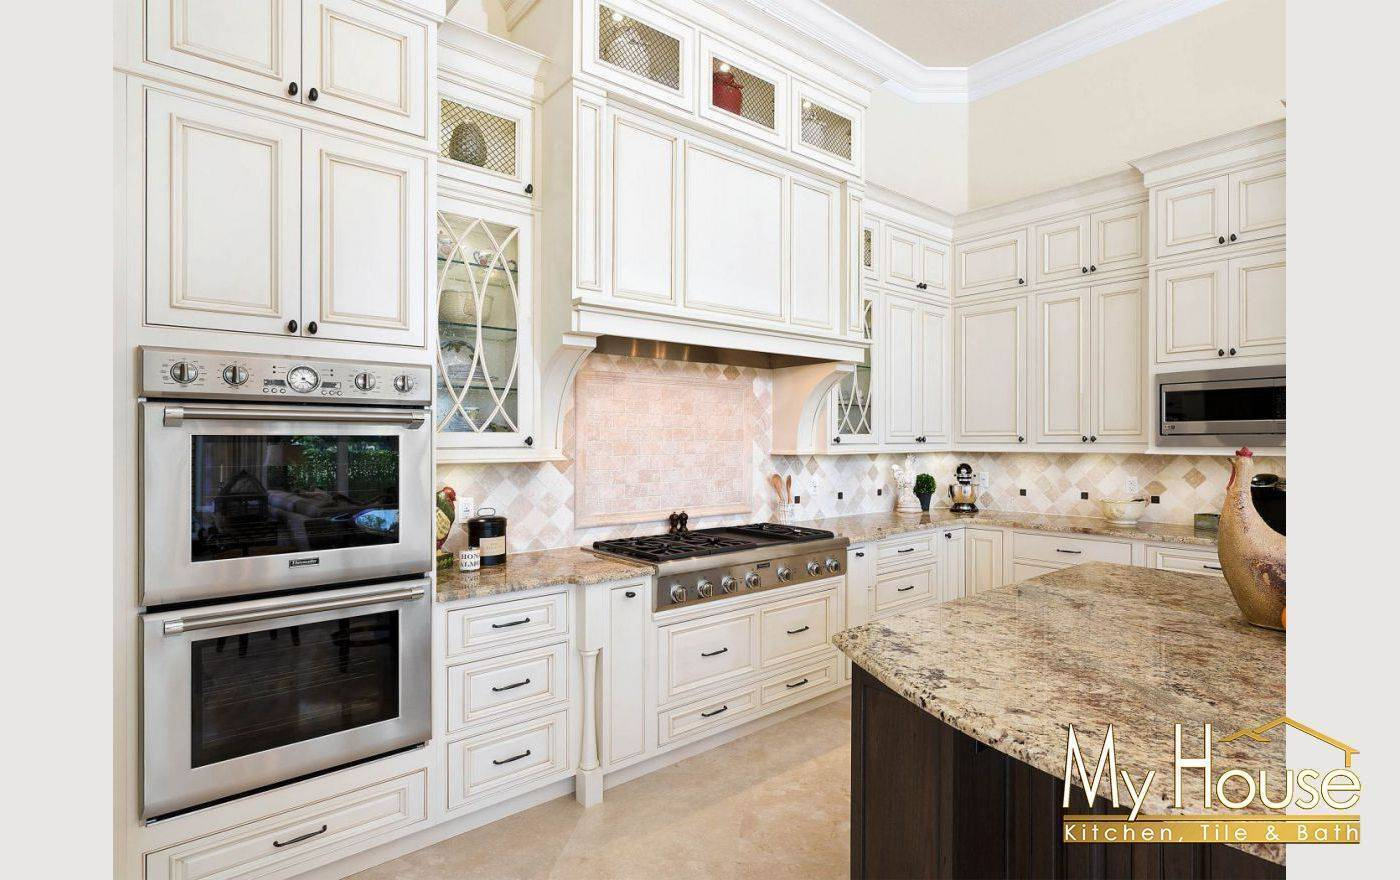 Shiloh Soft White with Cafe Highlight on Maple Cabinets